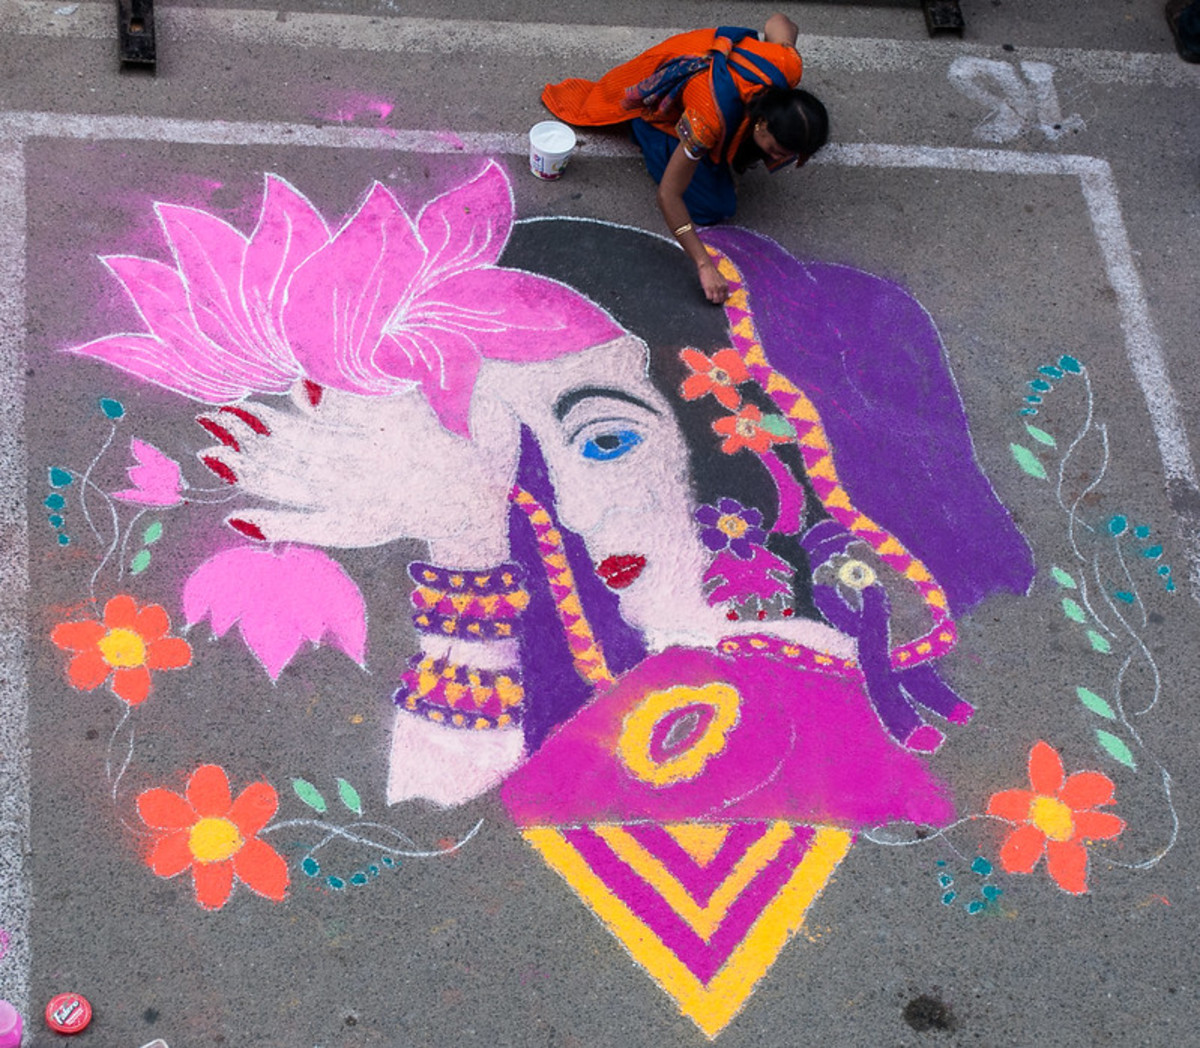 This ornamental (non-symmetrical) rangoli was created outdoors using chalk.